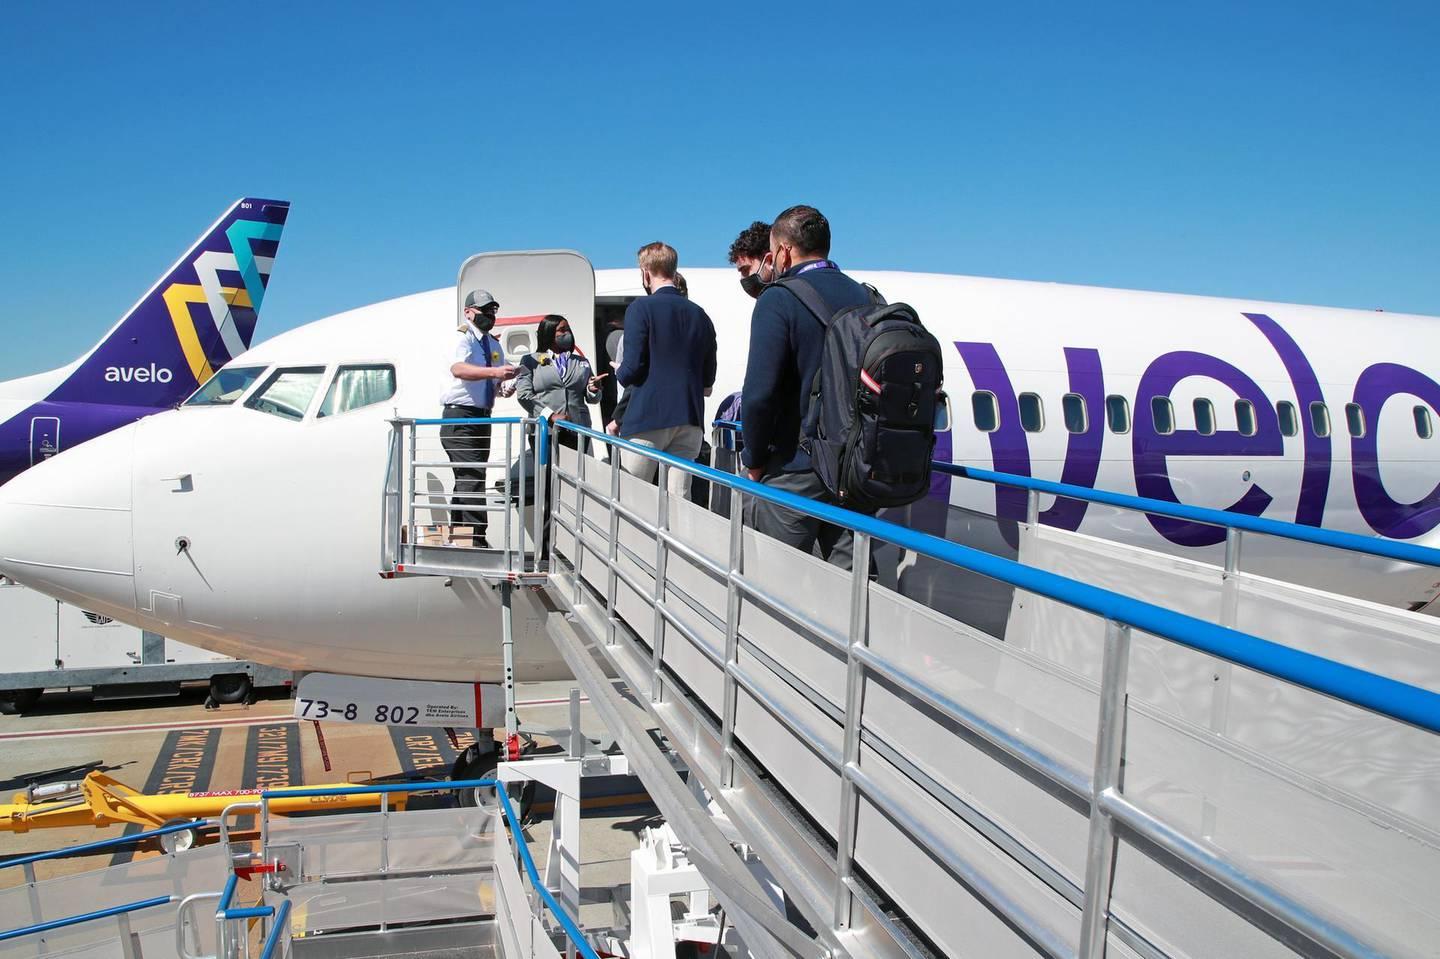 BURBANK, CALIFORNIA - APRIL 28: Passengers board the plane as Avelo Airlines takes off with first flight between Burbank and Santa Rosa at Hollywood Burbank Airport on April 28, 2021 in Burbank, California. (Photo by Joe Scarnici/Getty Images for Avelo Air)